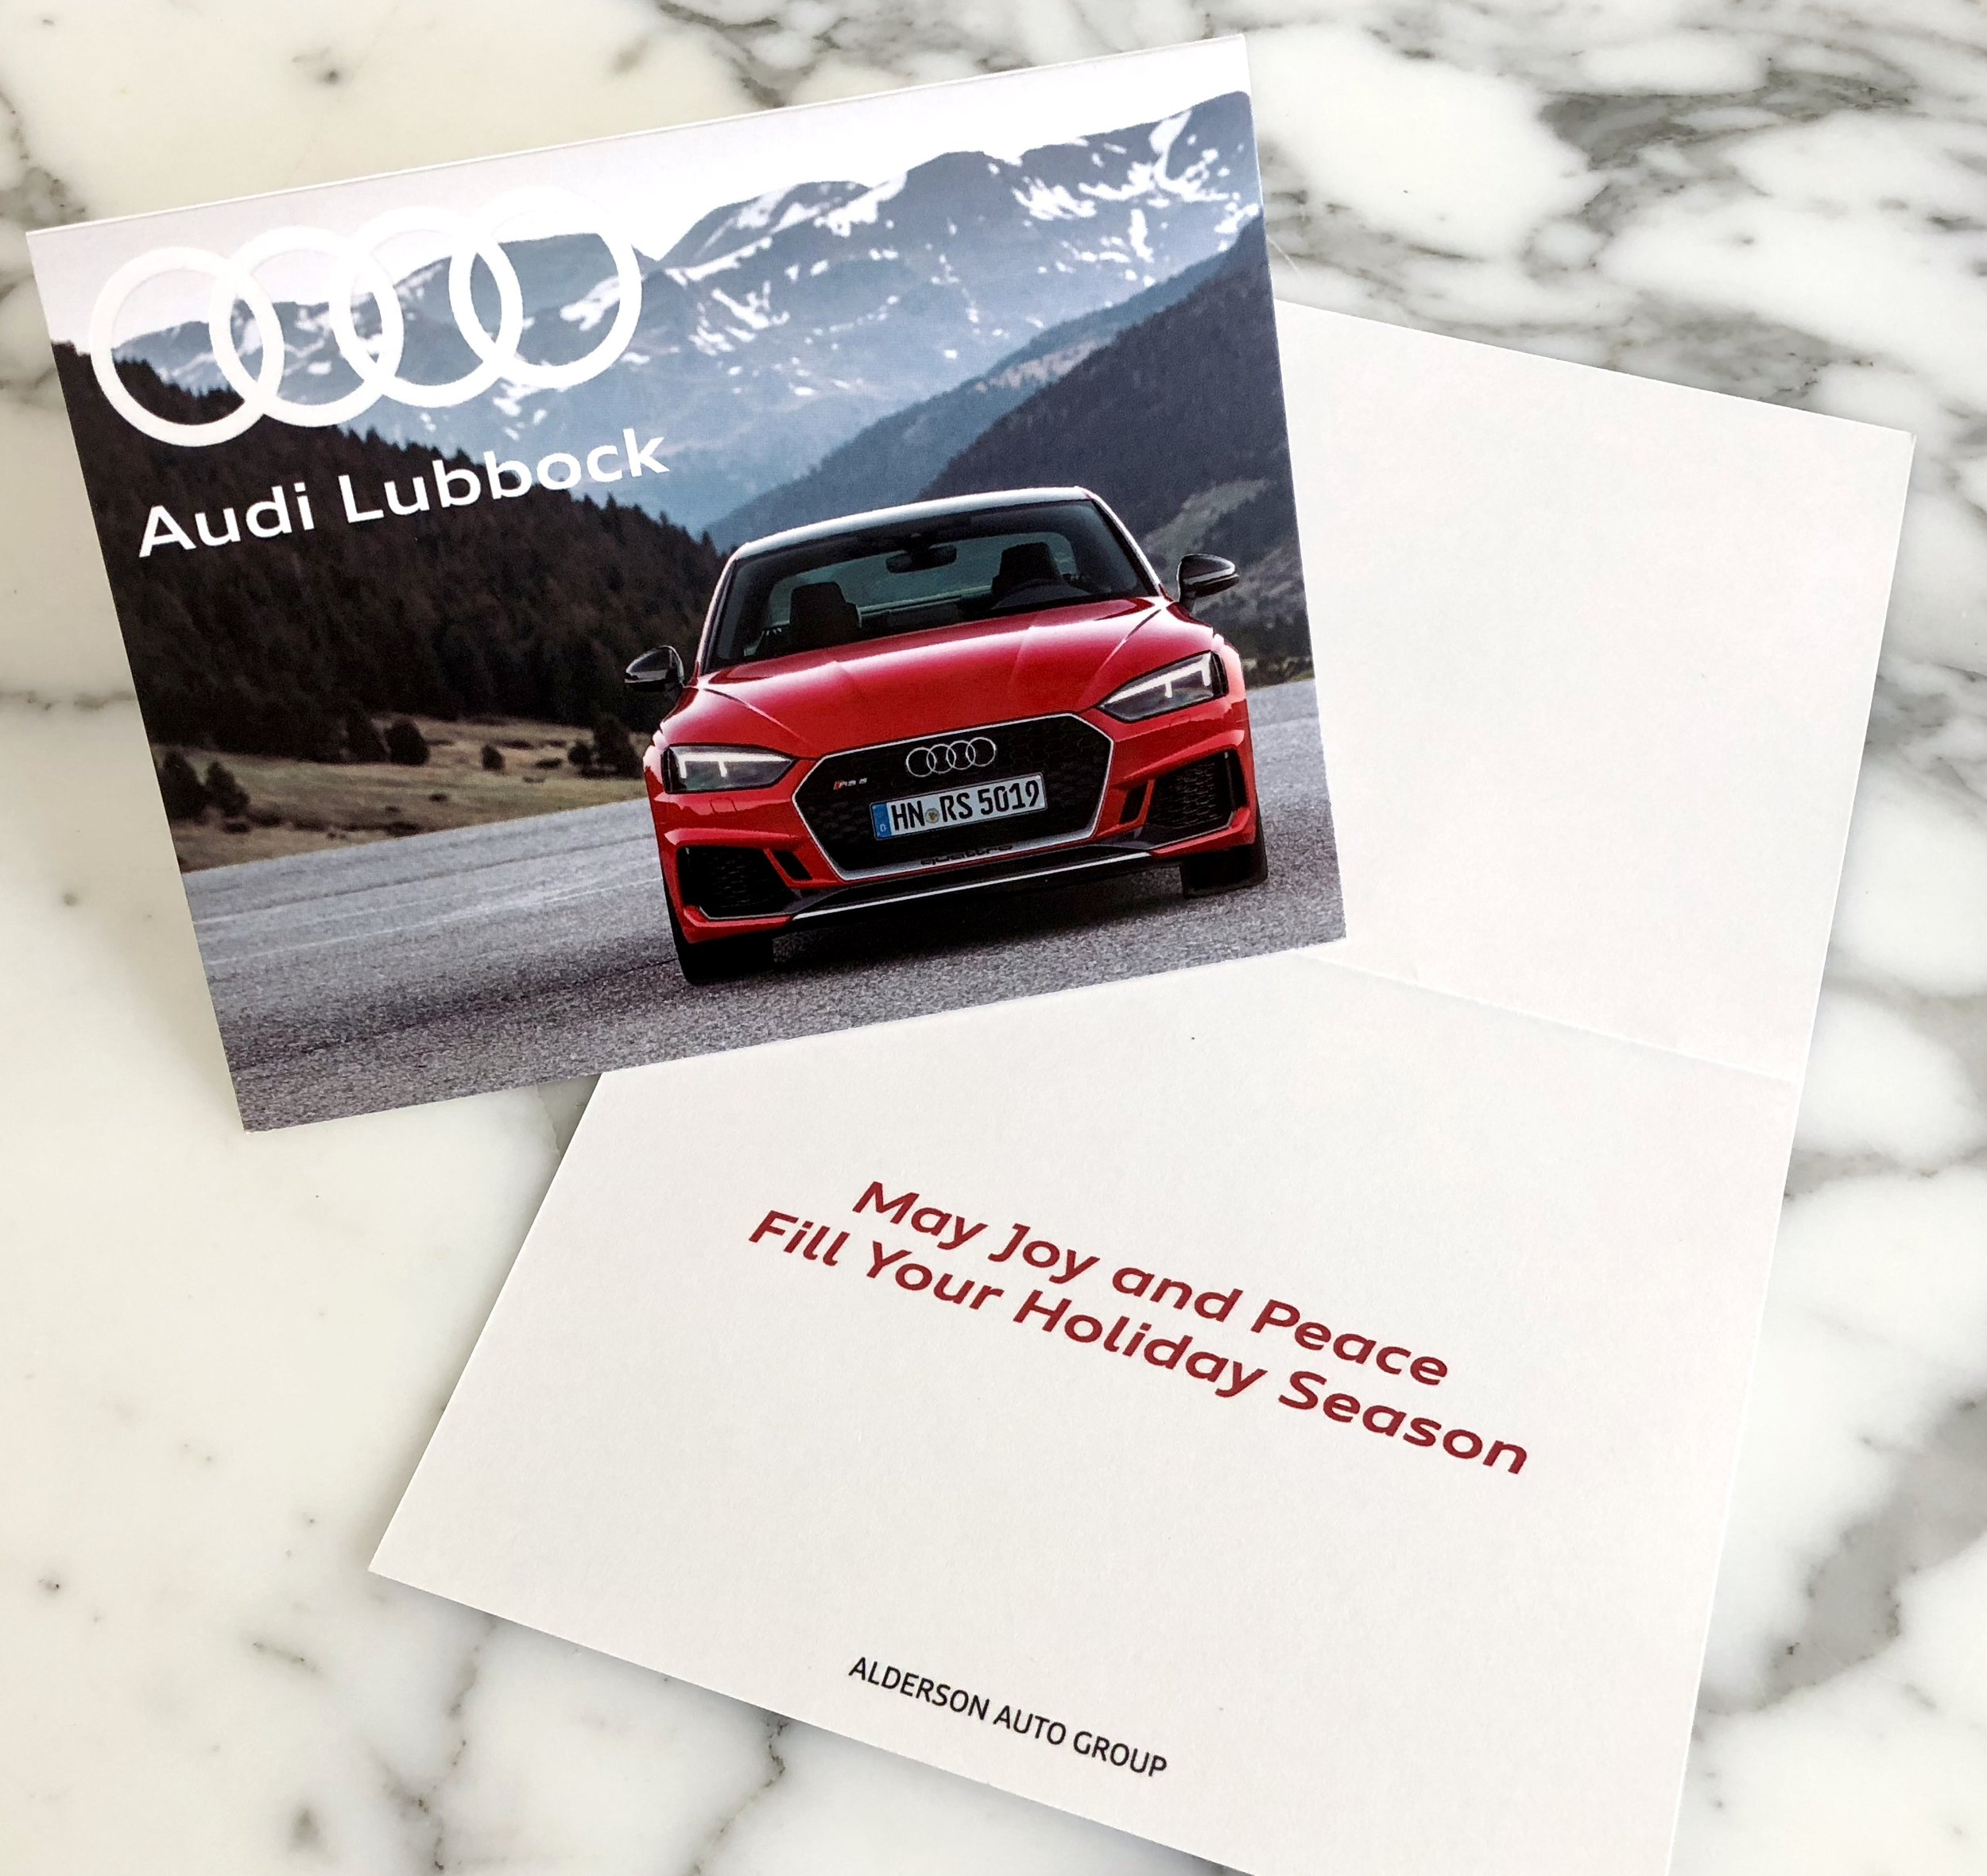 Audi Christmas Card - Multi-gloss coating to highlight the vehicle on the front of the card.